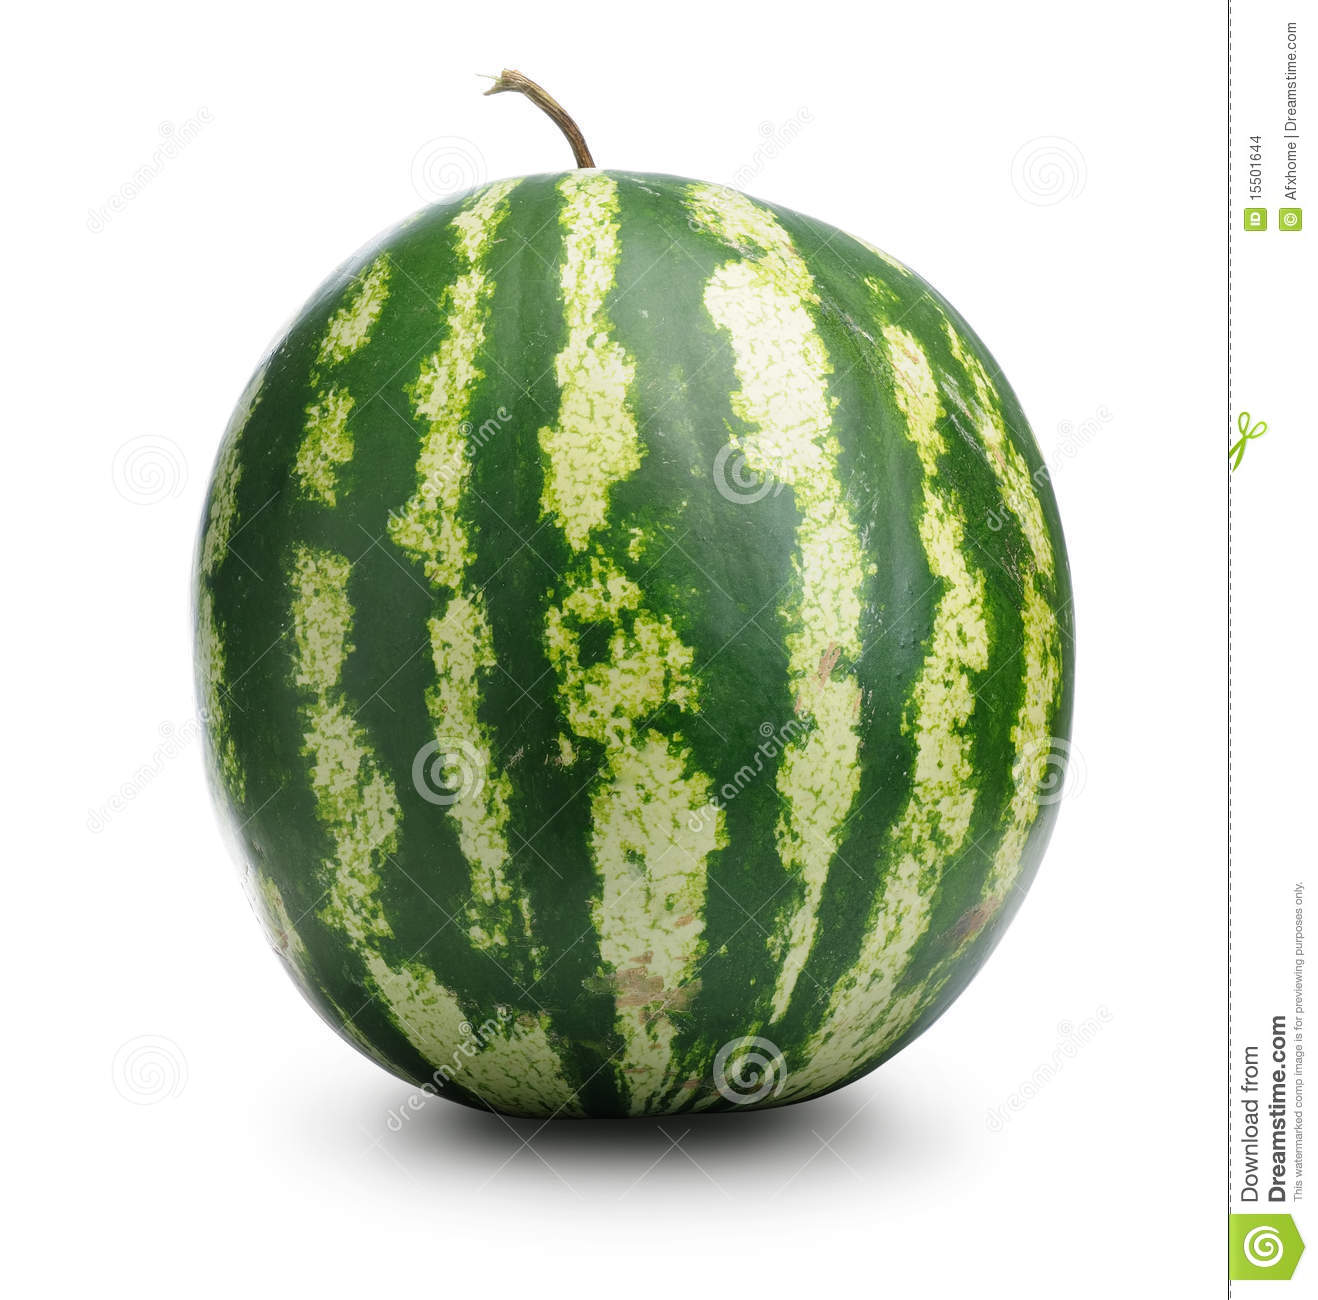 watermelon essay Yes, watermelon is 92 percent water, but that other 8 percent is filled with good nutrition and amazing health benefits.